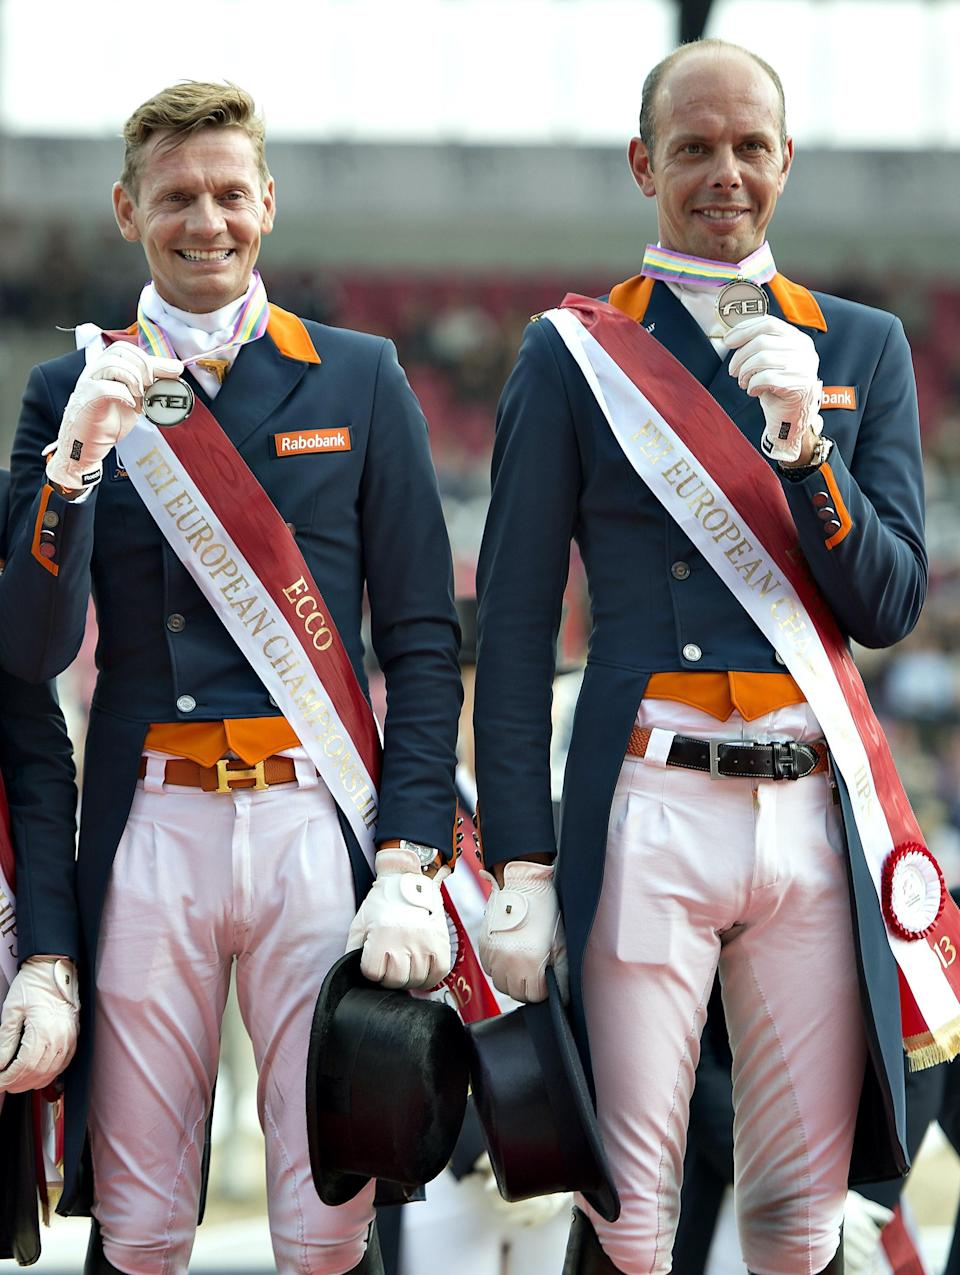 This will be the second Olympics in which the couple will be competing together in dressage, after coming in fourth in Rio. They've also both medaled at the Olympics before:Minderhoud won silver in 2008, and Gal won bronze in 2012. Oh, and they've been together for over a decade!